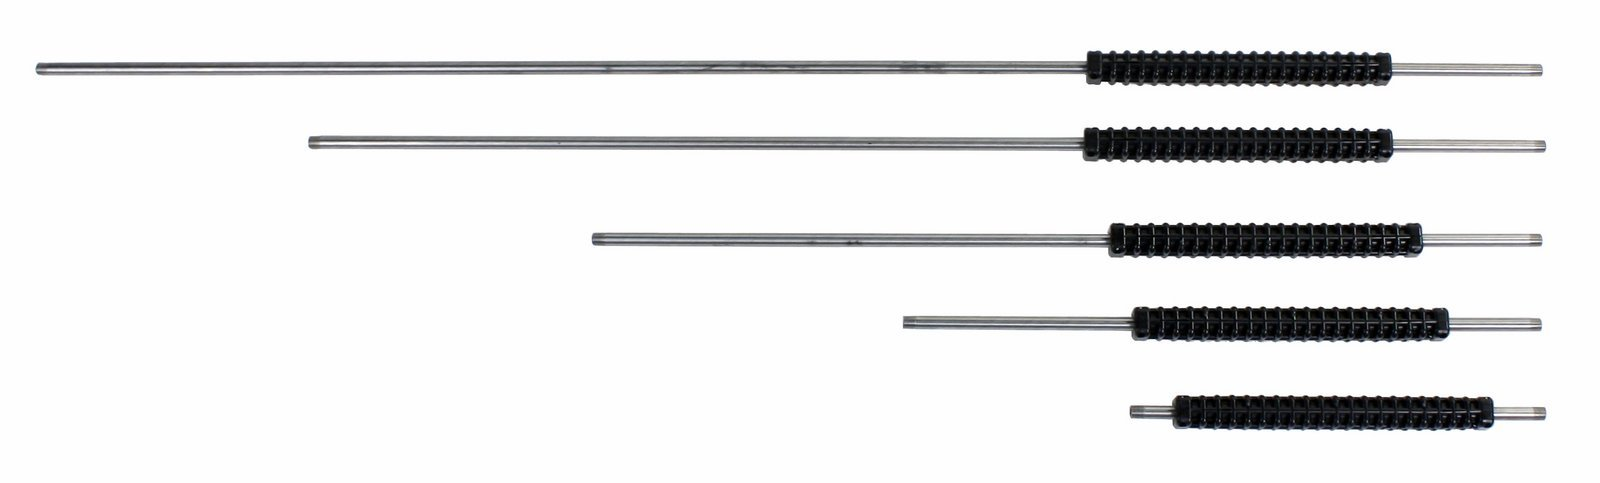 Giant Industries 15.5in. 24in. 36in. 48in. and 60in. Stainless Steel Wands with 12in. Adjustable Grip